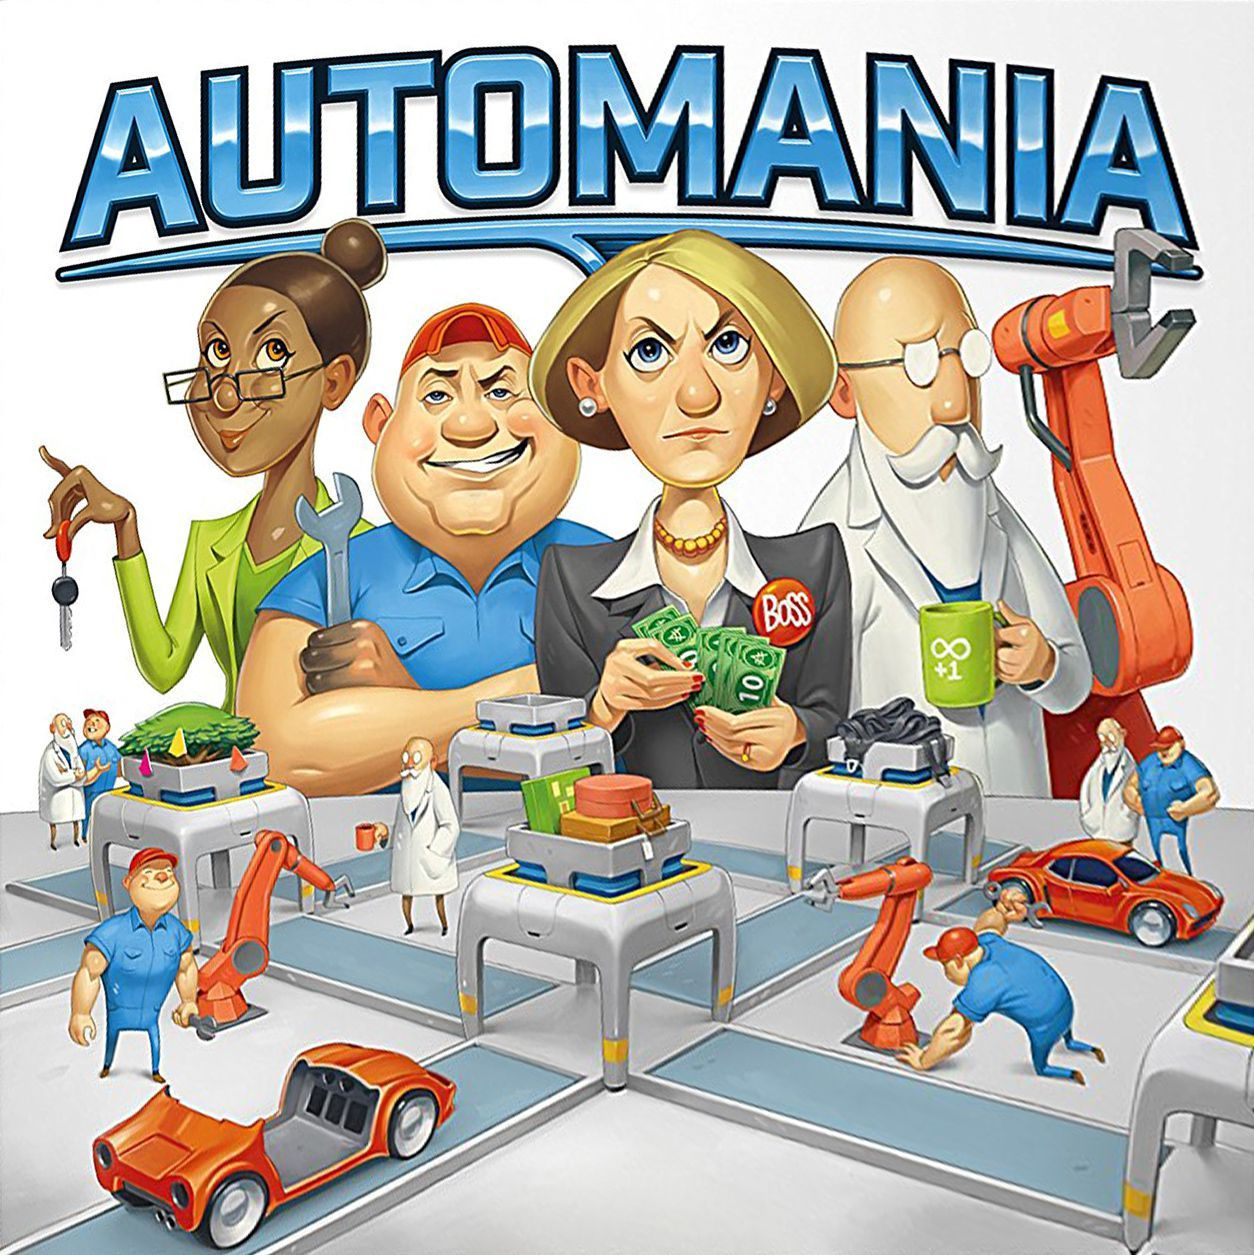 Main image for Automania board game